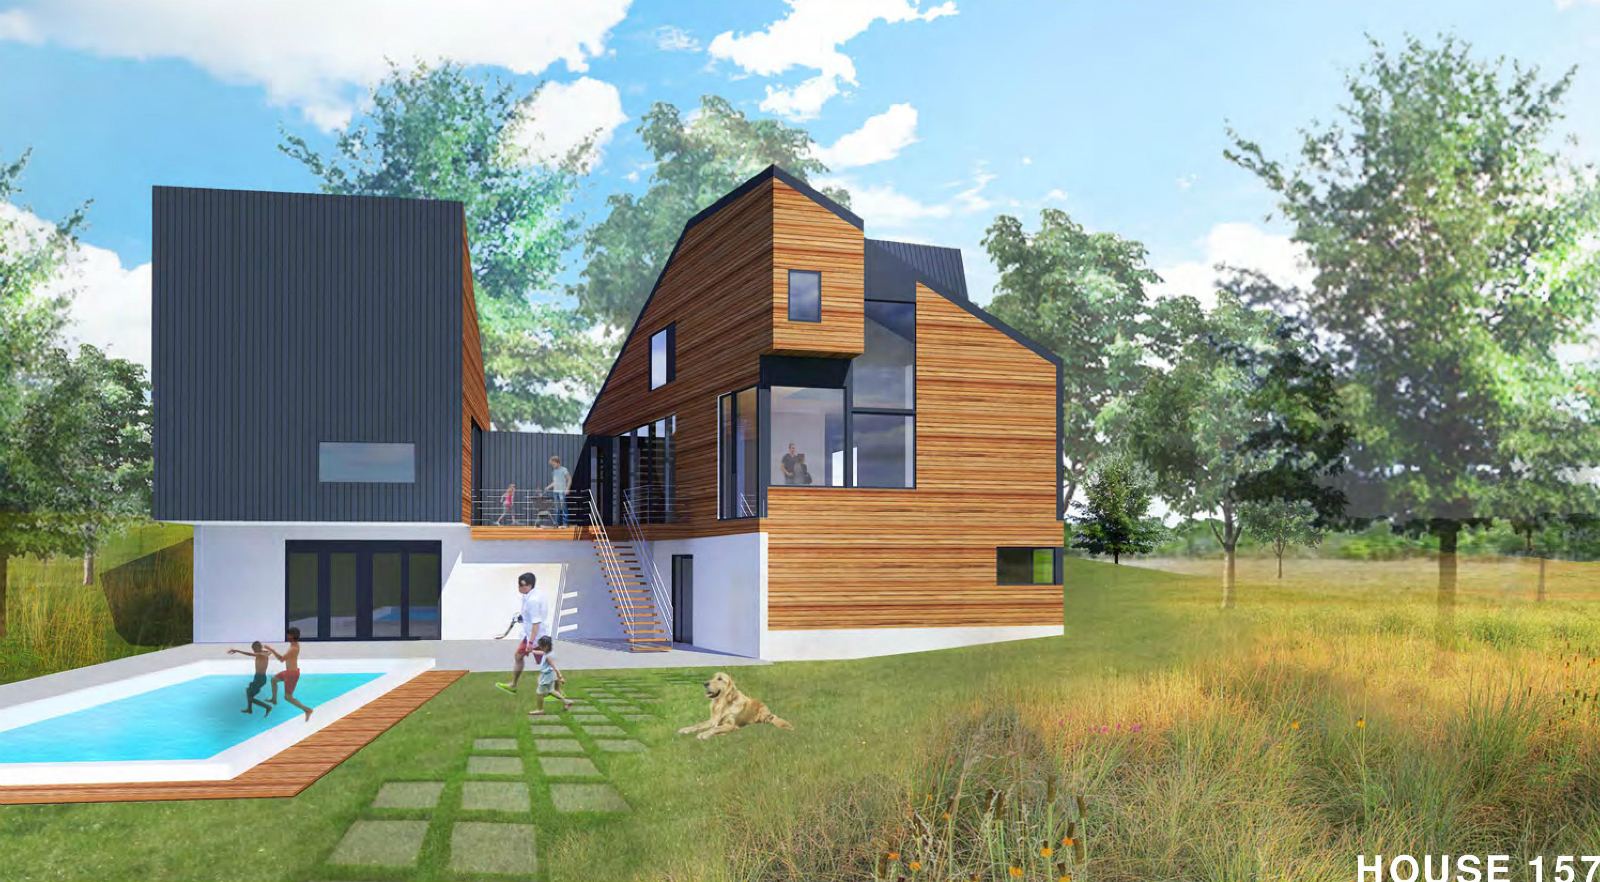 UIC Reveals Plan for Contemporary Homes at Ballas and Ladue